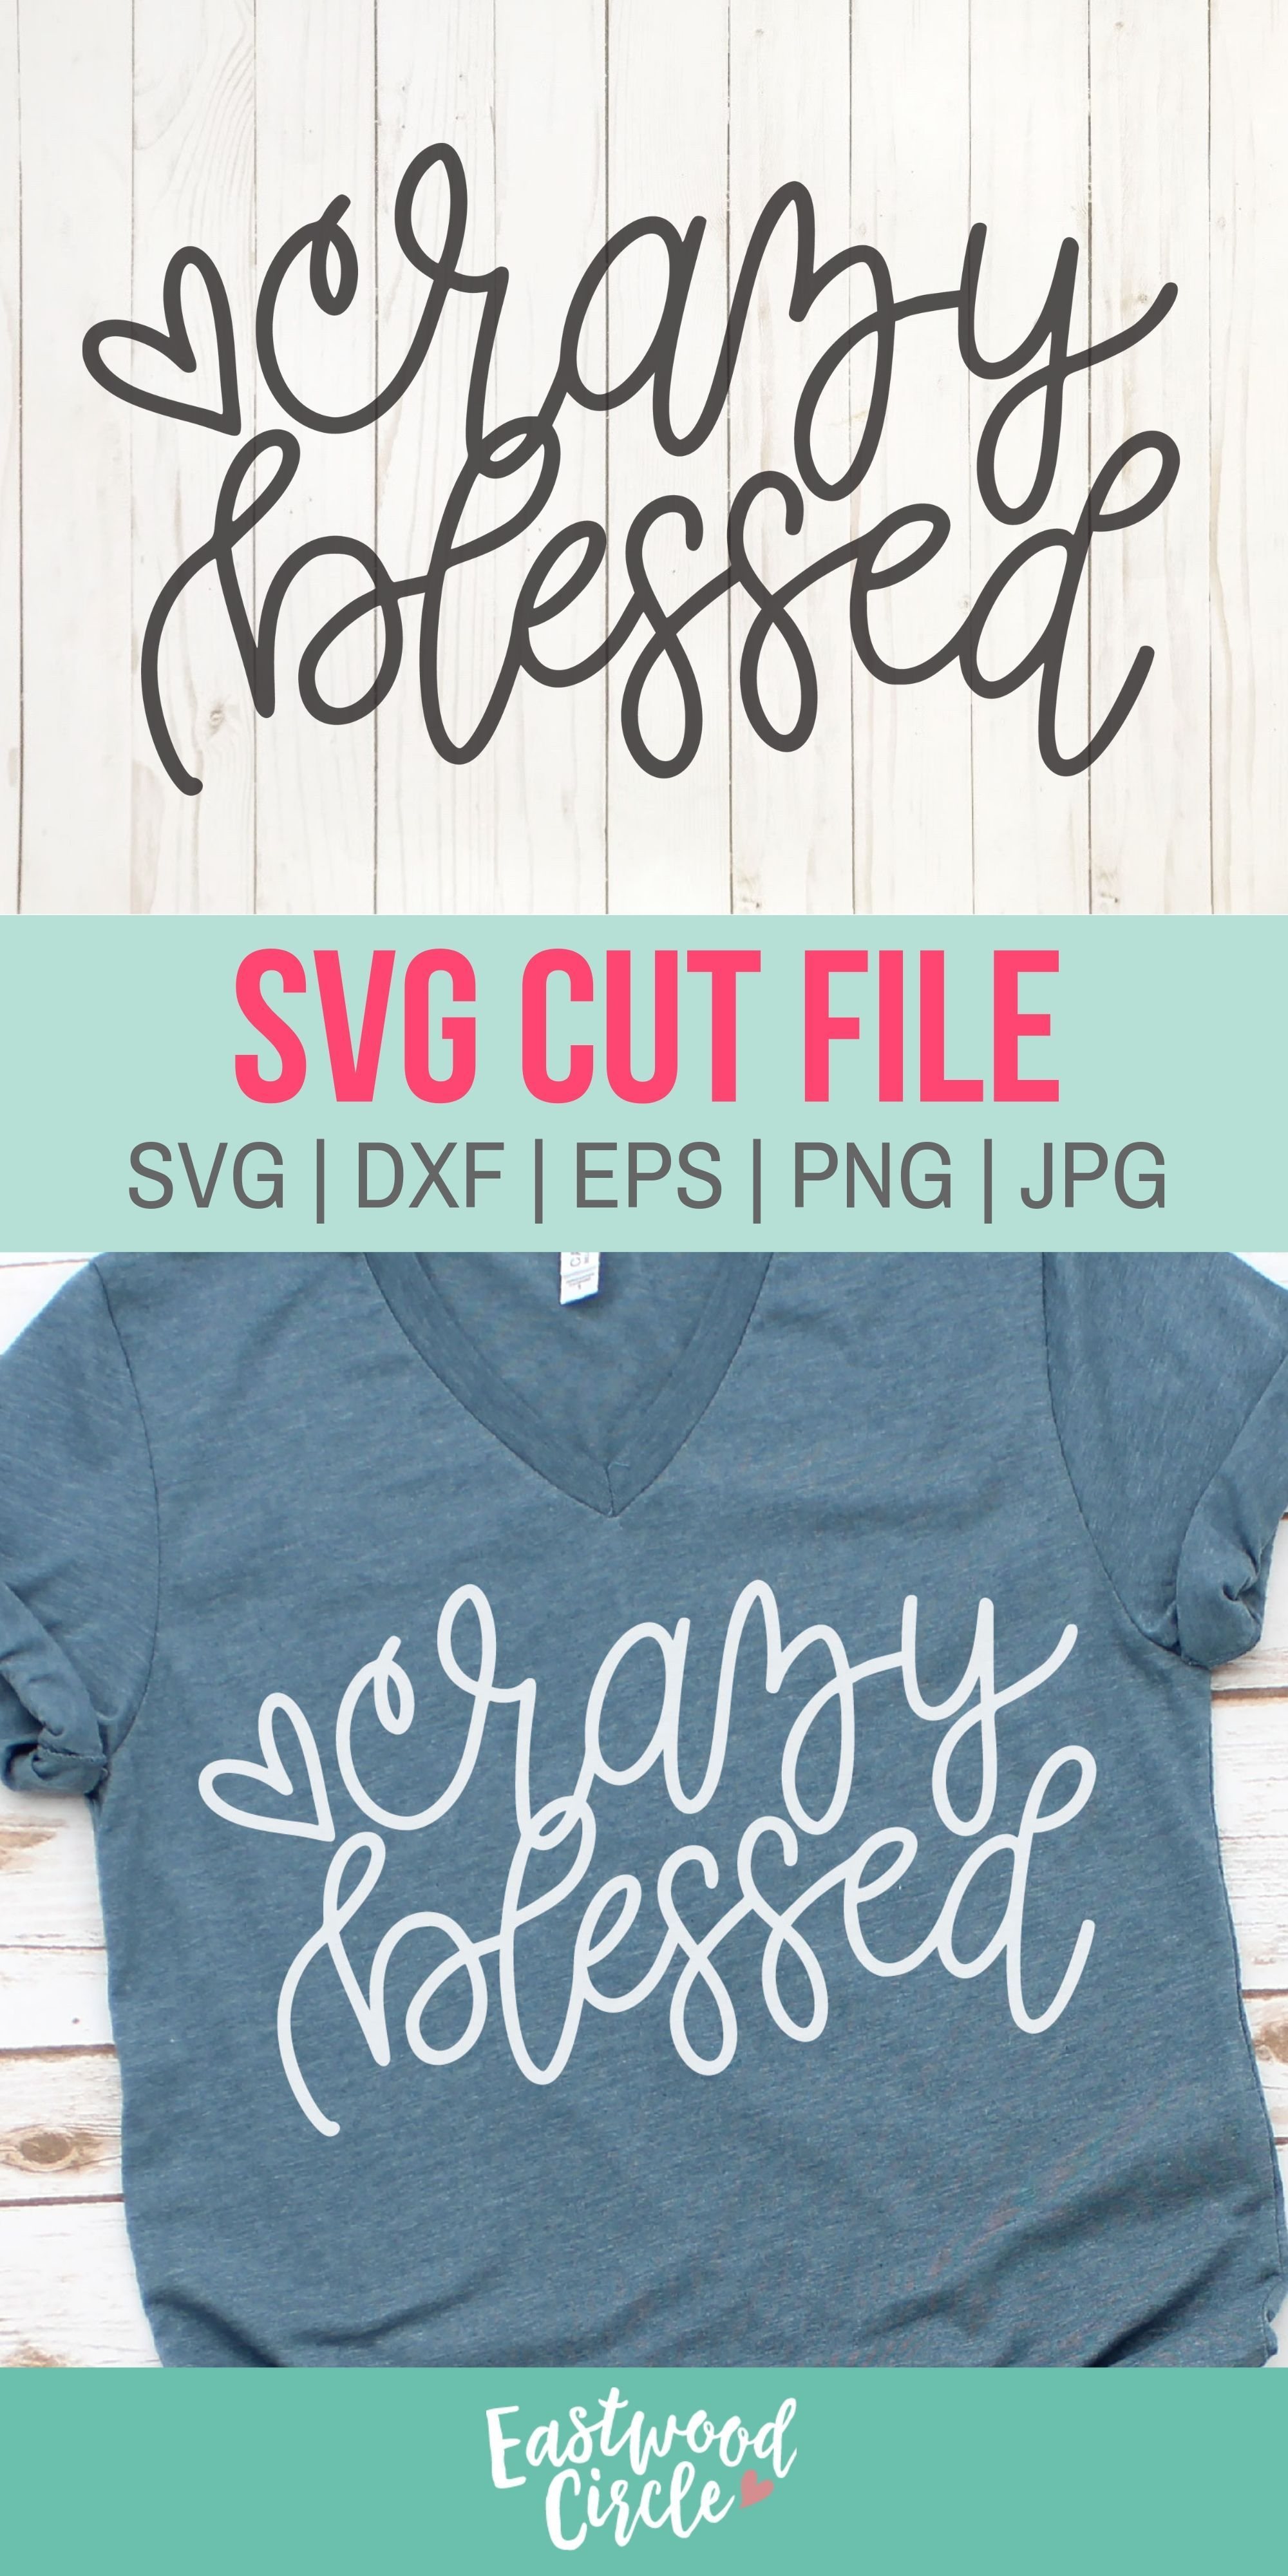 Crazy Blessed svg, Fall svg, Fall svg File, Thanksgiving svg, Fall Shirt svg, Fall svg Files, Fall Shirt svg Files, Autumn svg, Blessed svg